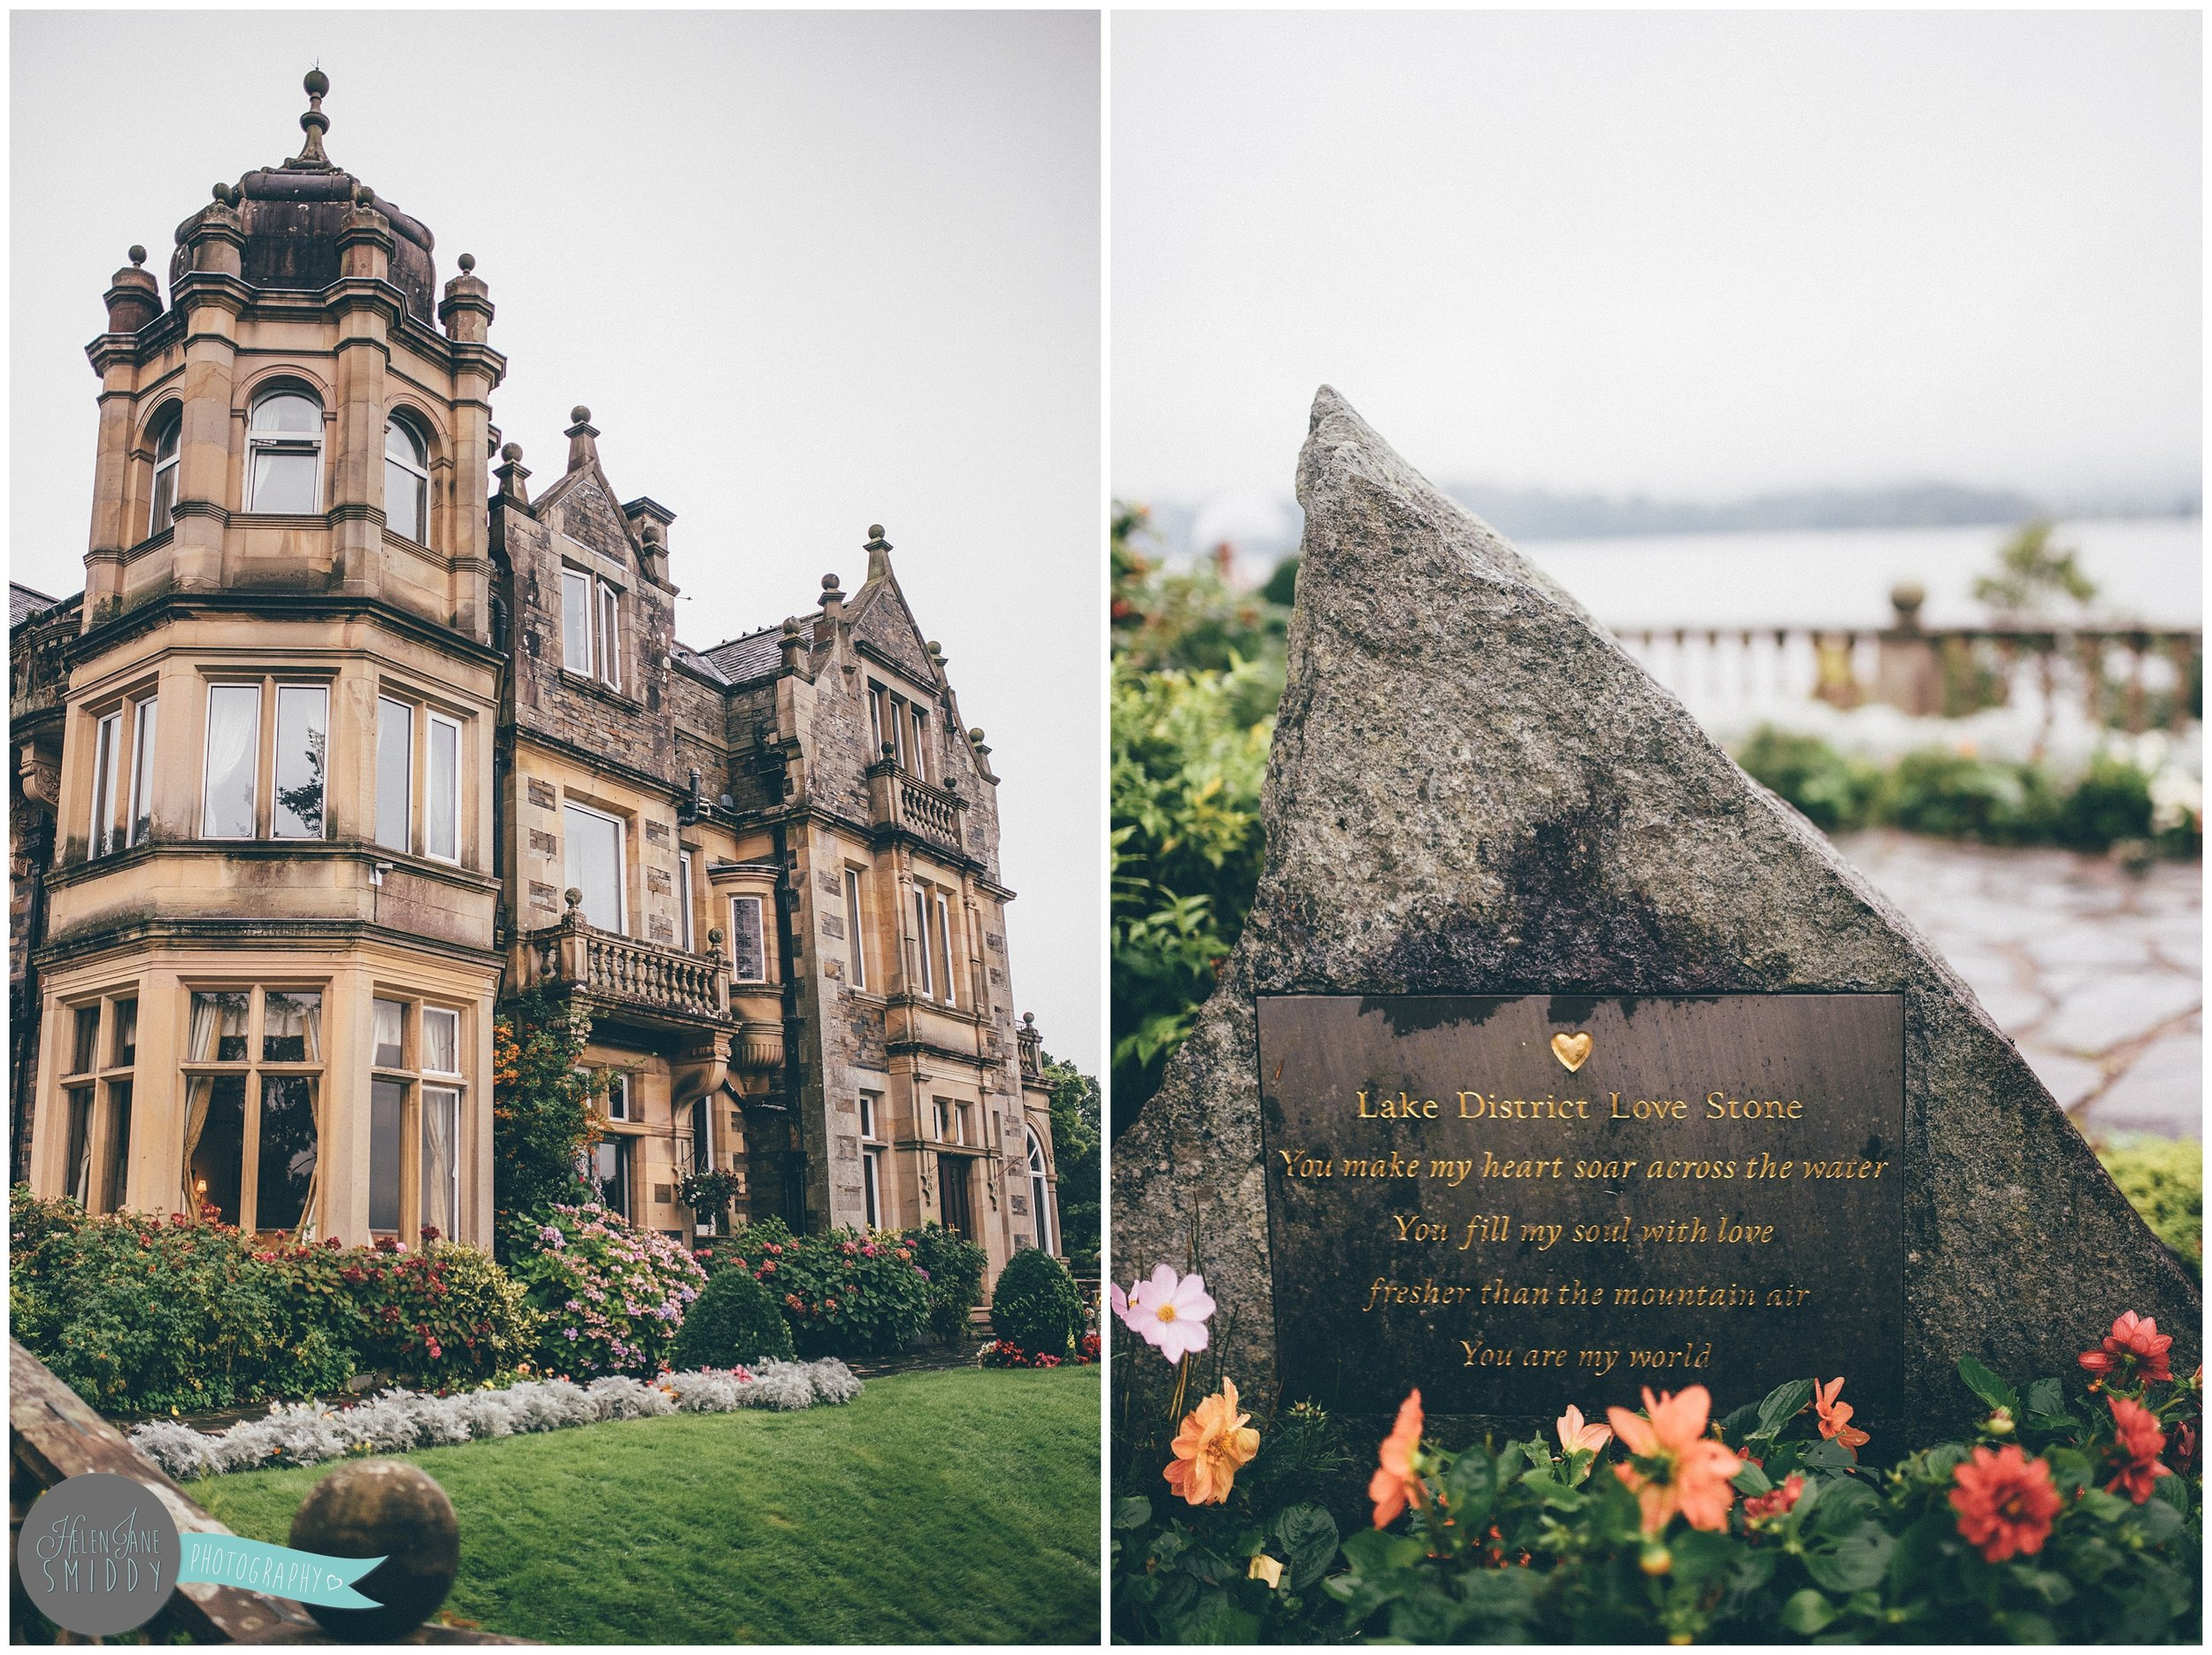 langdalechasehotel-lakewindermere-lakedistrict-weddingvenue-weddingphotography-cheshirewedding-cheshireweddingphotography-cheshireweddingphotographer-lakedistrictweddingphotographer-lakedistrictweddingphotography-weddingphotography-weddingphotographer-intimatewedding-familywedding-brideandgroom-bride-langdalechase-summerwedding-lacegown-lacedress-laceweddingdress